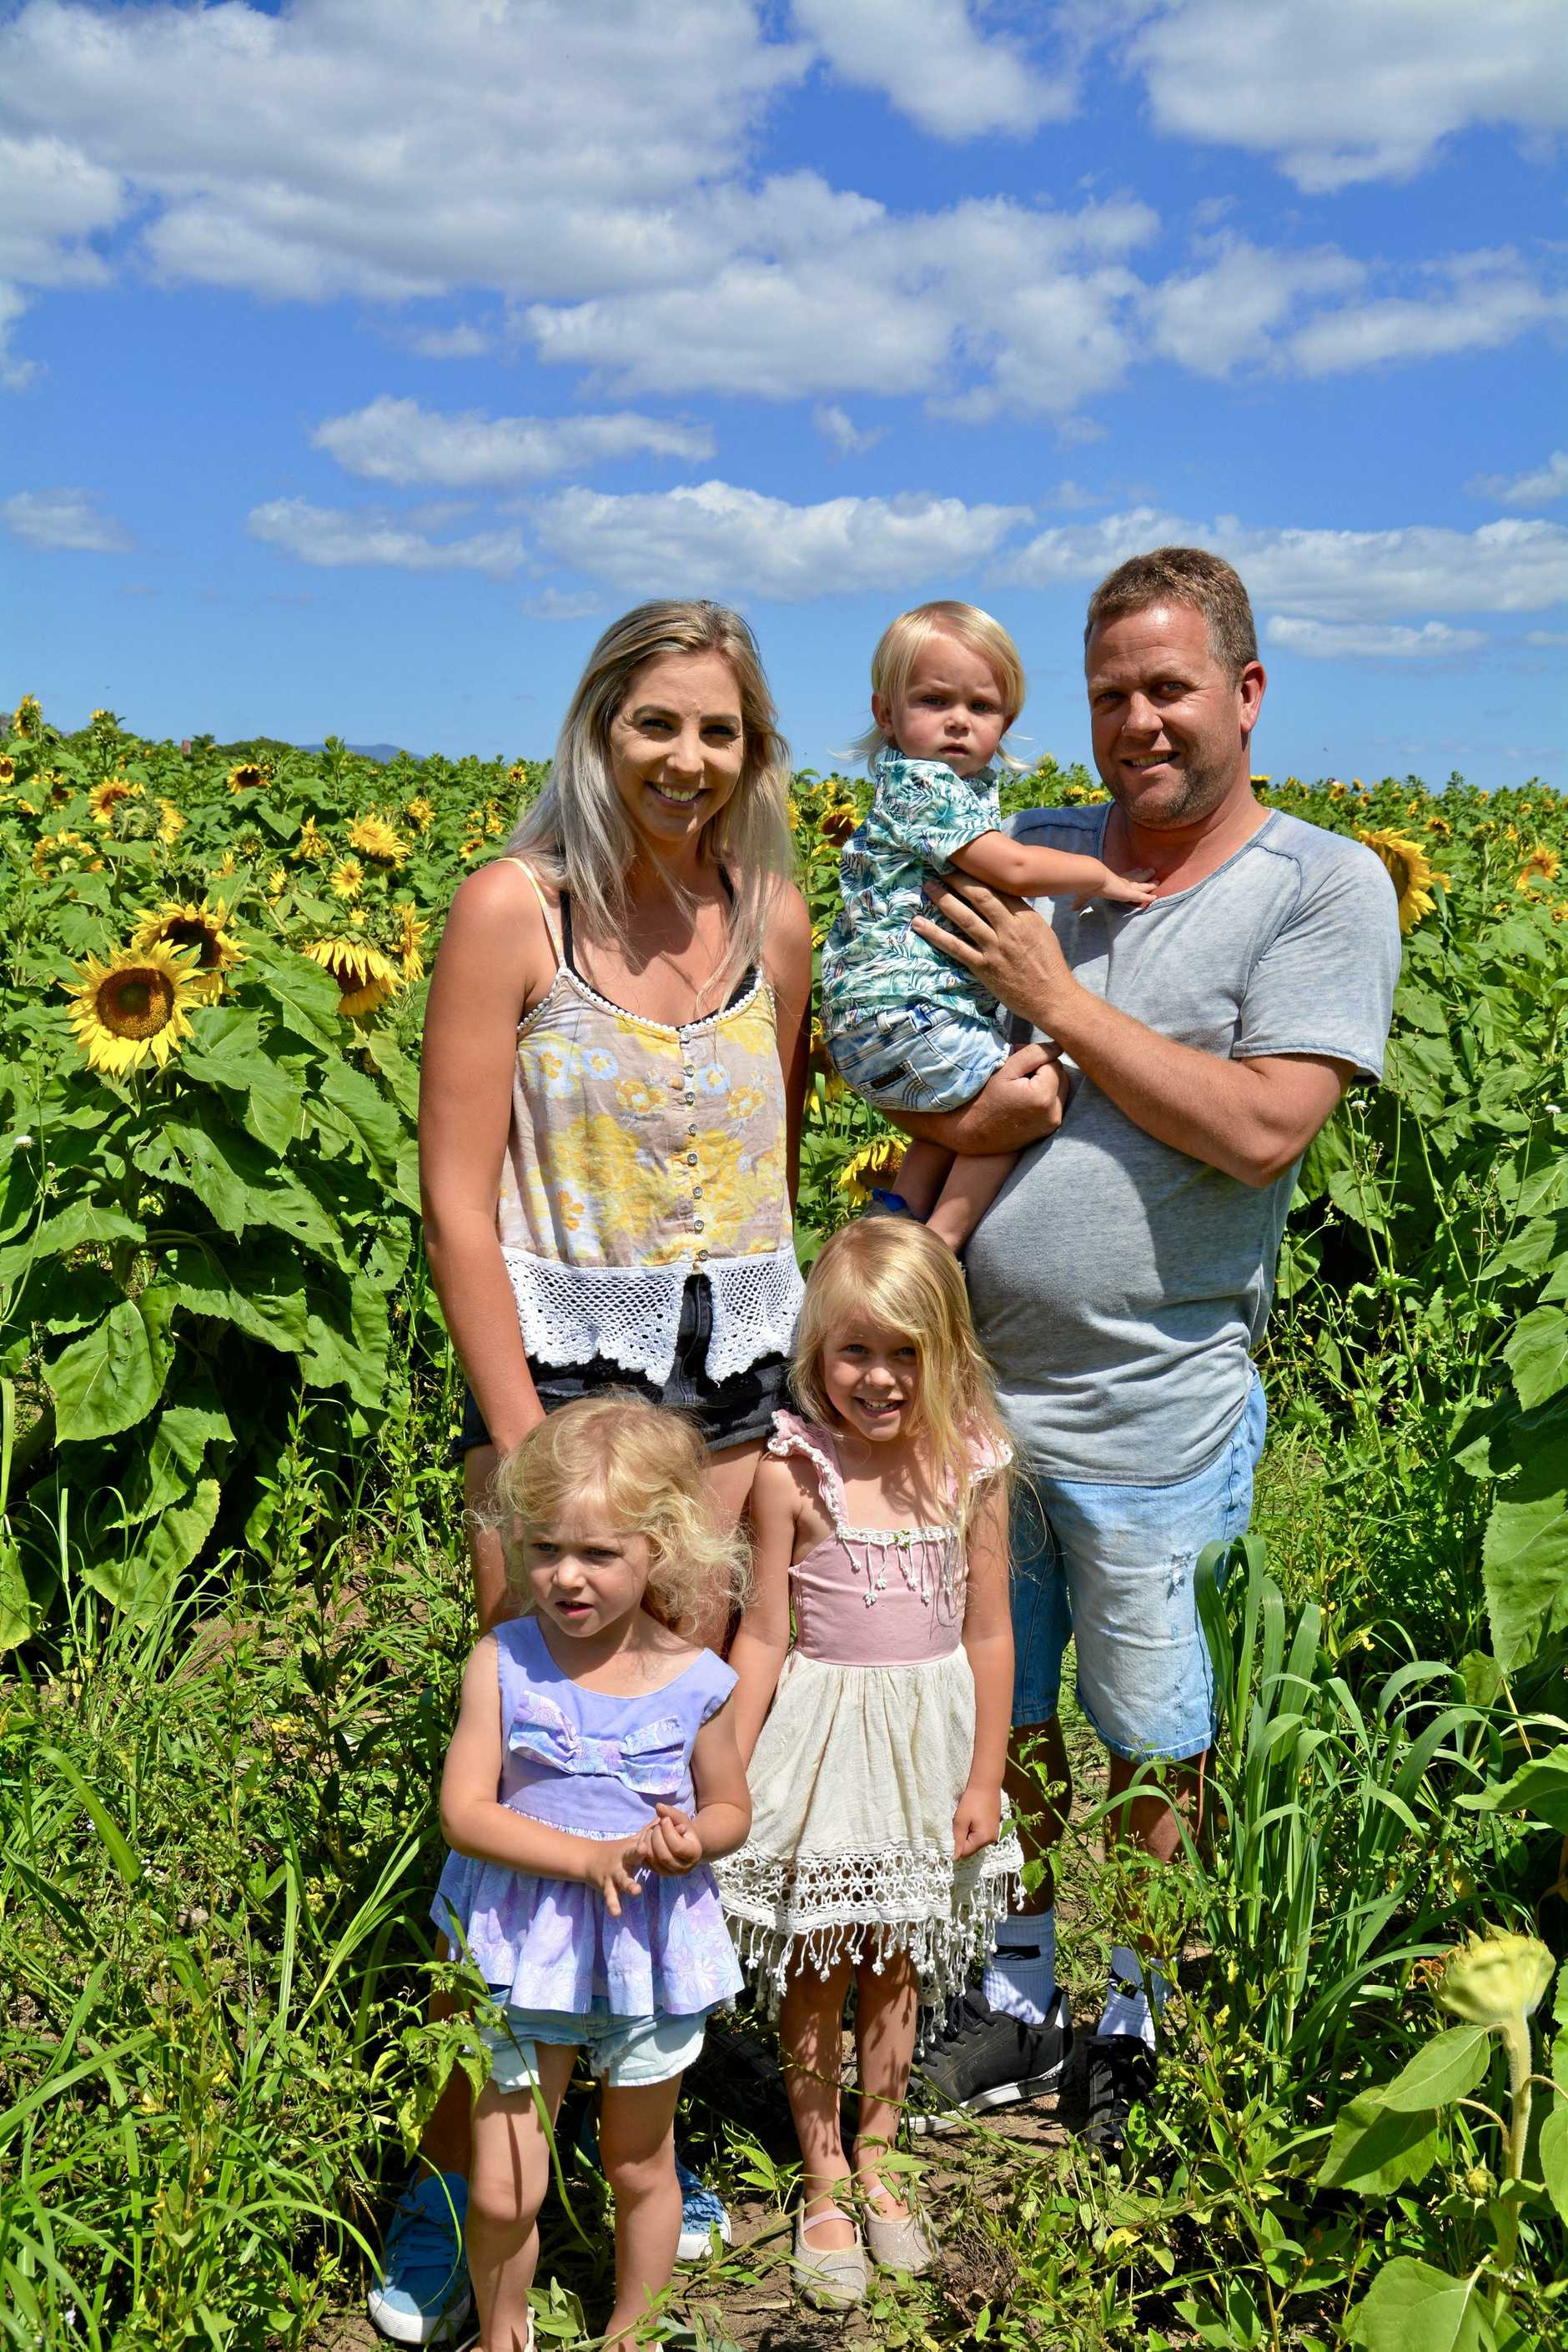 Cannon Valley's Sam McKerrow celebrated Father's Day, and his birthday, wandering through the sunflower farm at Marian with his partner Belinda Johnson and children Eden, 3, Indigo, 5, and Lukas, 18 months.